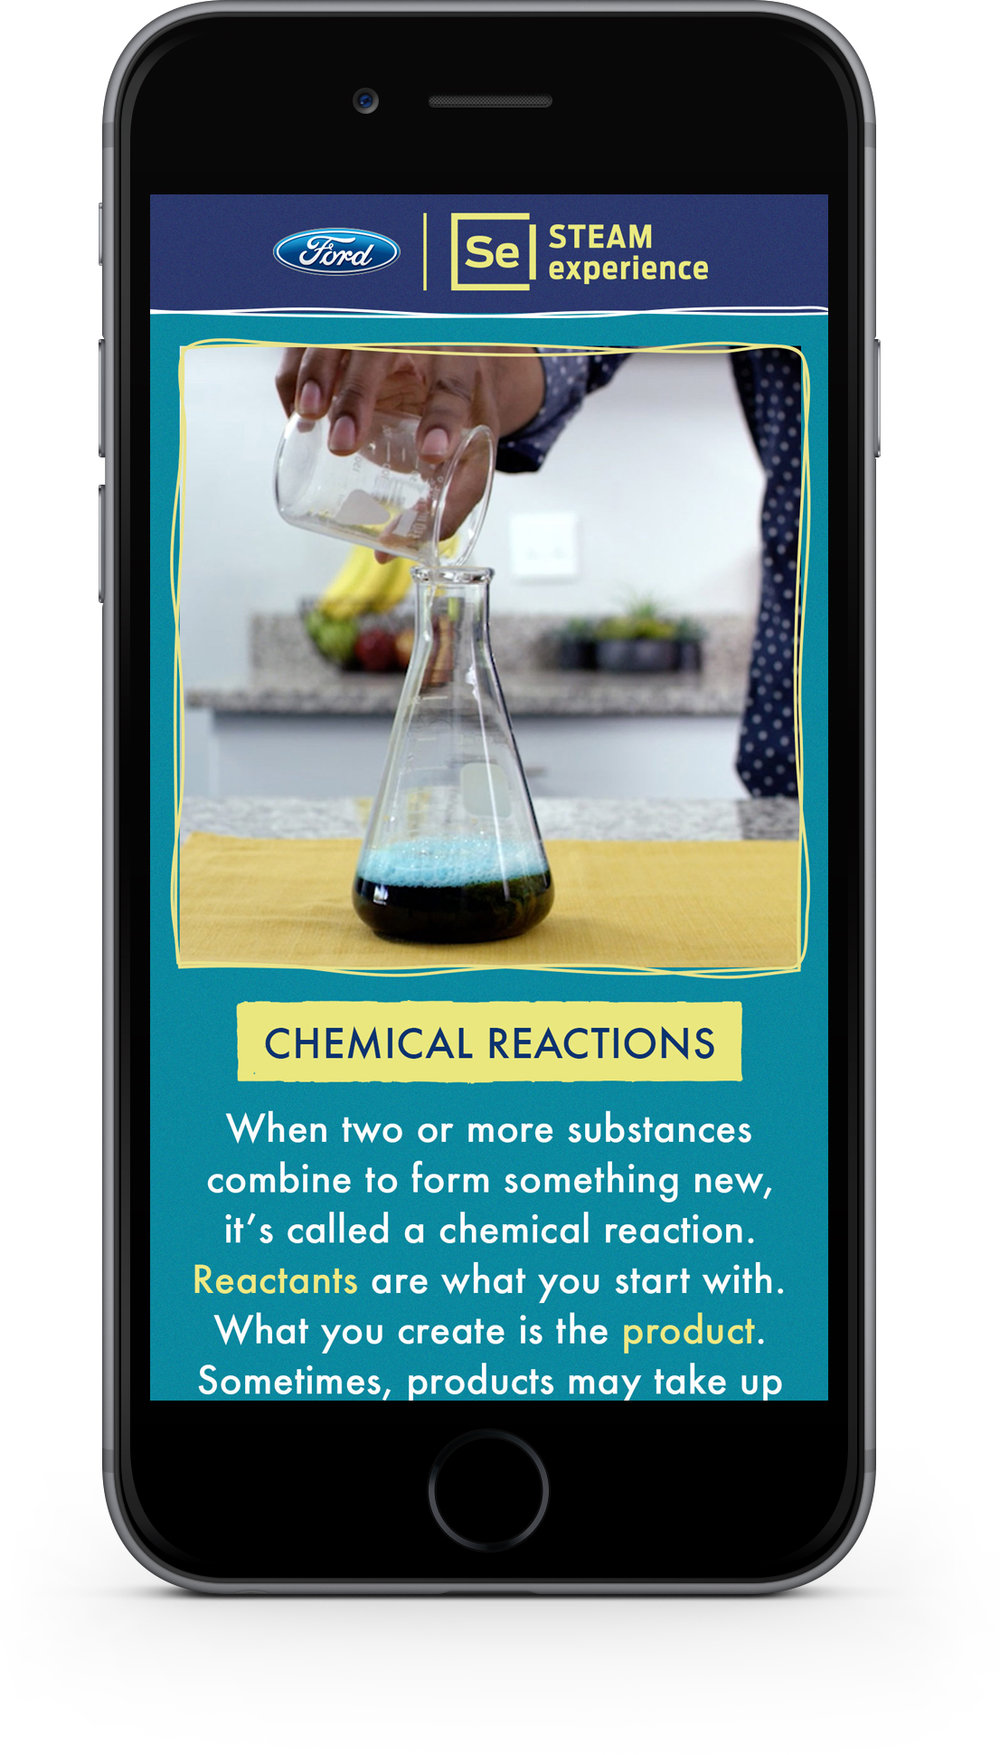 SIAS-chemicalreactions1.jpg